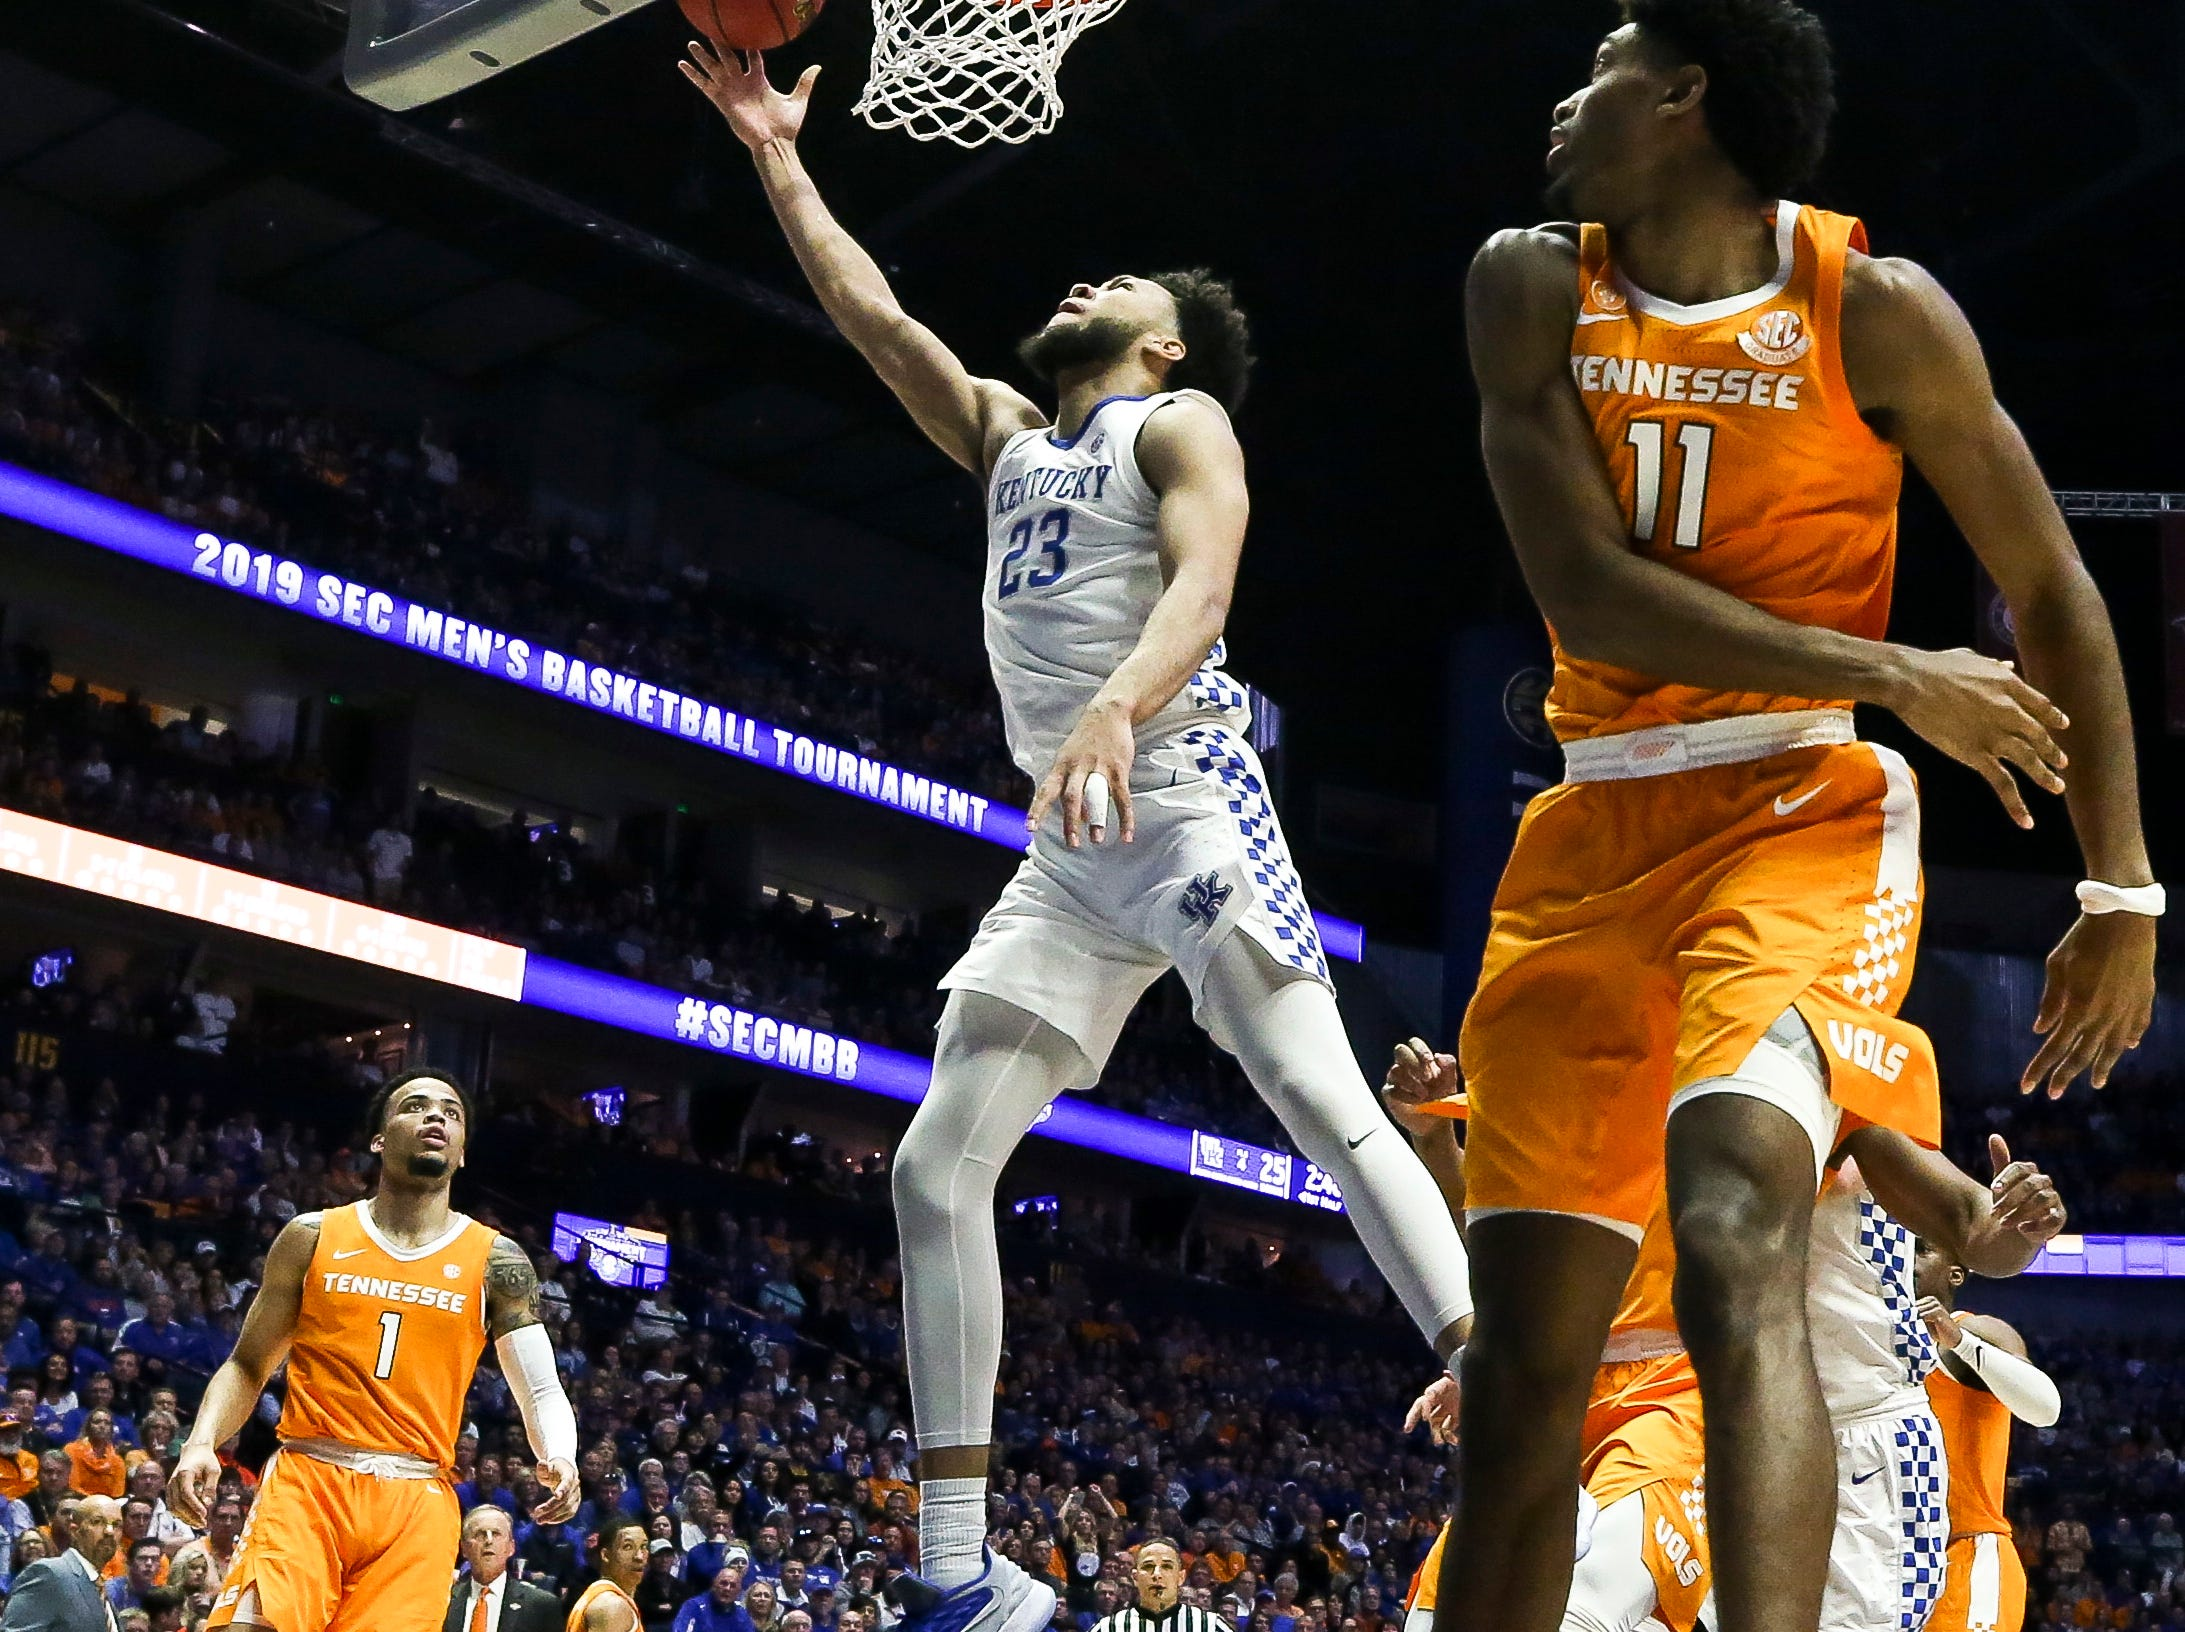 Kentucky forward EJ Montgomery (23) shoots against Tennessee during the first half of the SEC Men's Basketball Tournament semifinal game at Bridgestone Arena in Nashville, Tenn., Saturday, March 16, 2019.